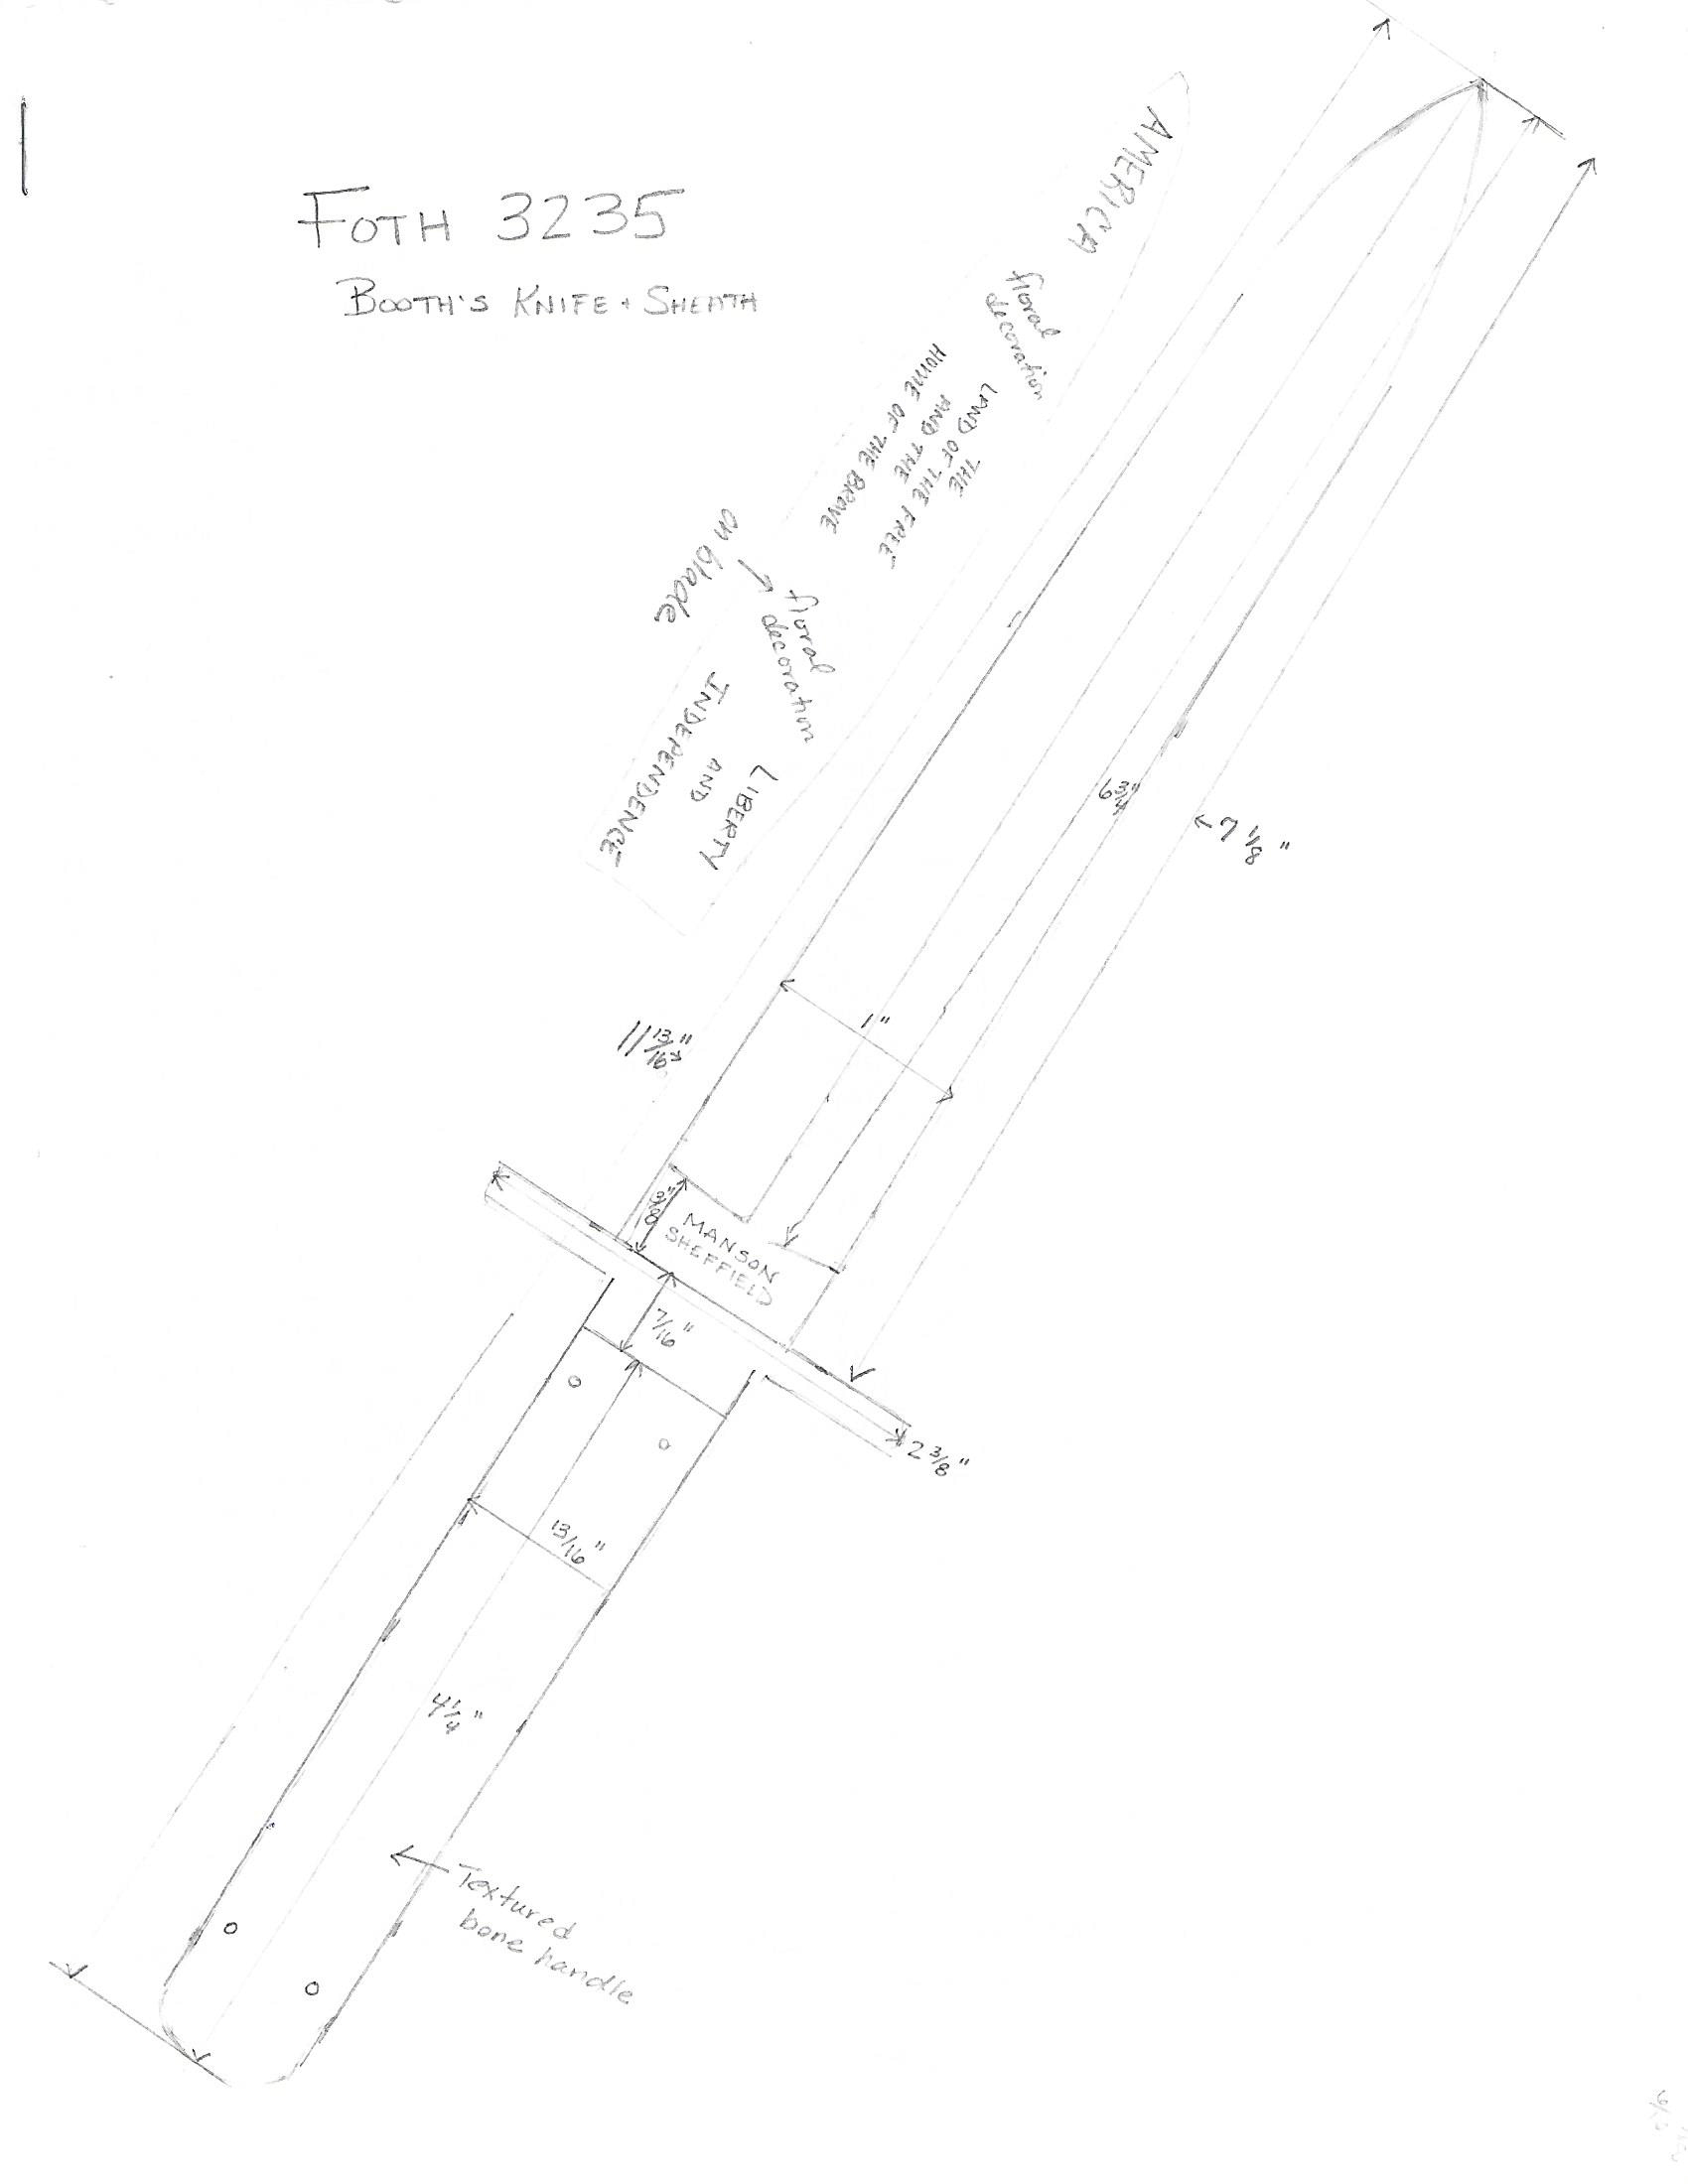 Pencil sketch of the Bowie knife #3218